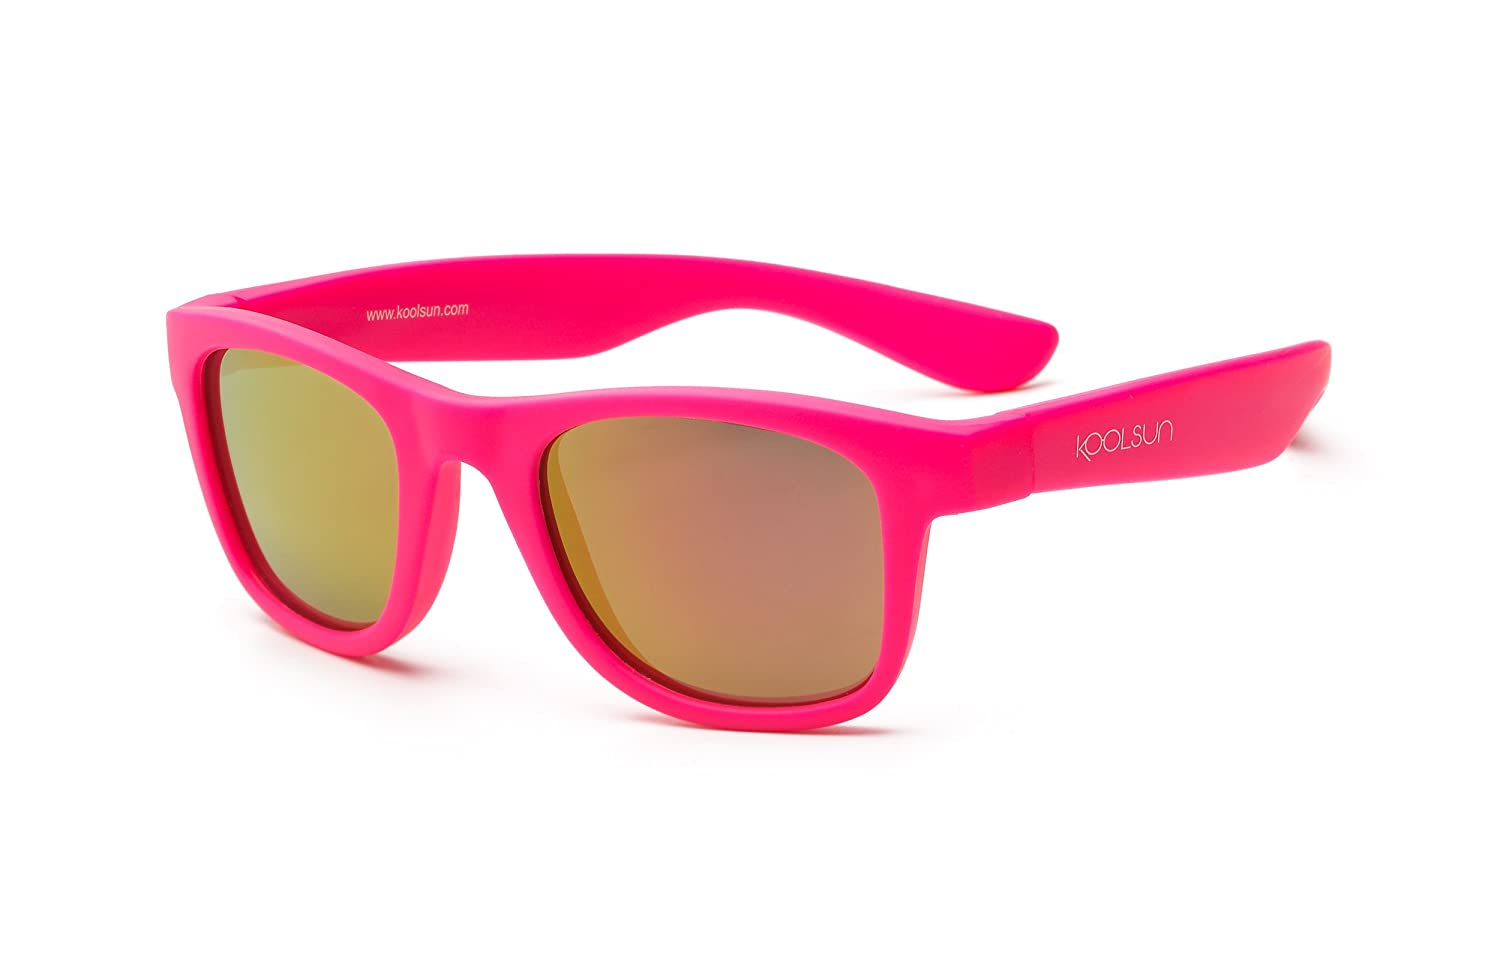 Koolsun Children's Optical Sunglasses Wave Fashion 3 + Neon Pink Mirrored 100% UV Protection, 1, Category 3 WANP003